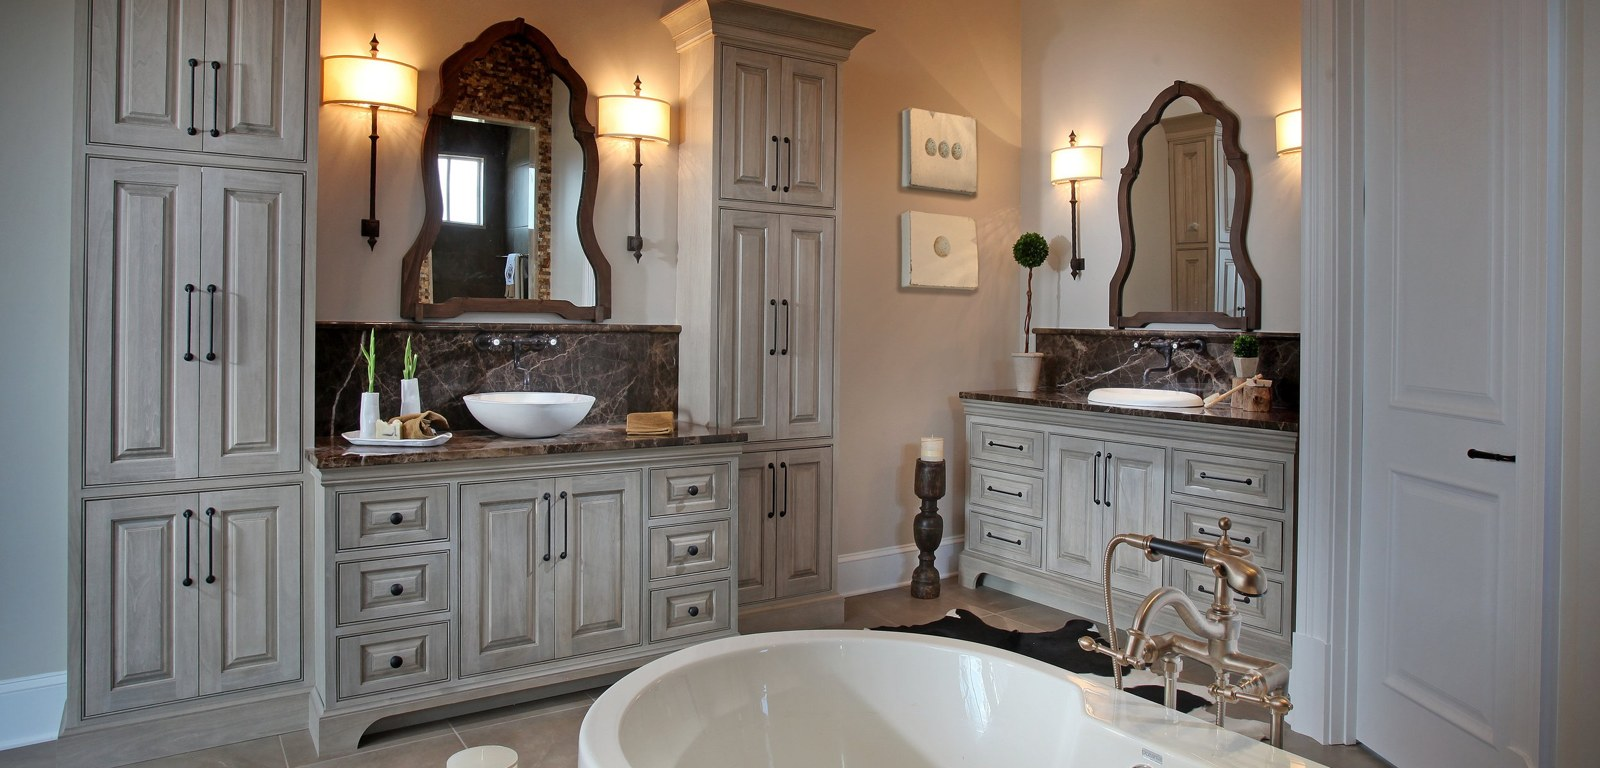 Bathroom Remodeling Newnan Ga kitchen & bathroom design and remodelingl | see splash's showroom